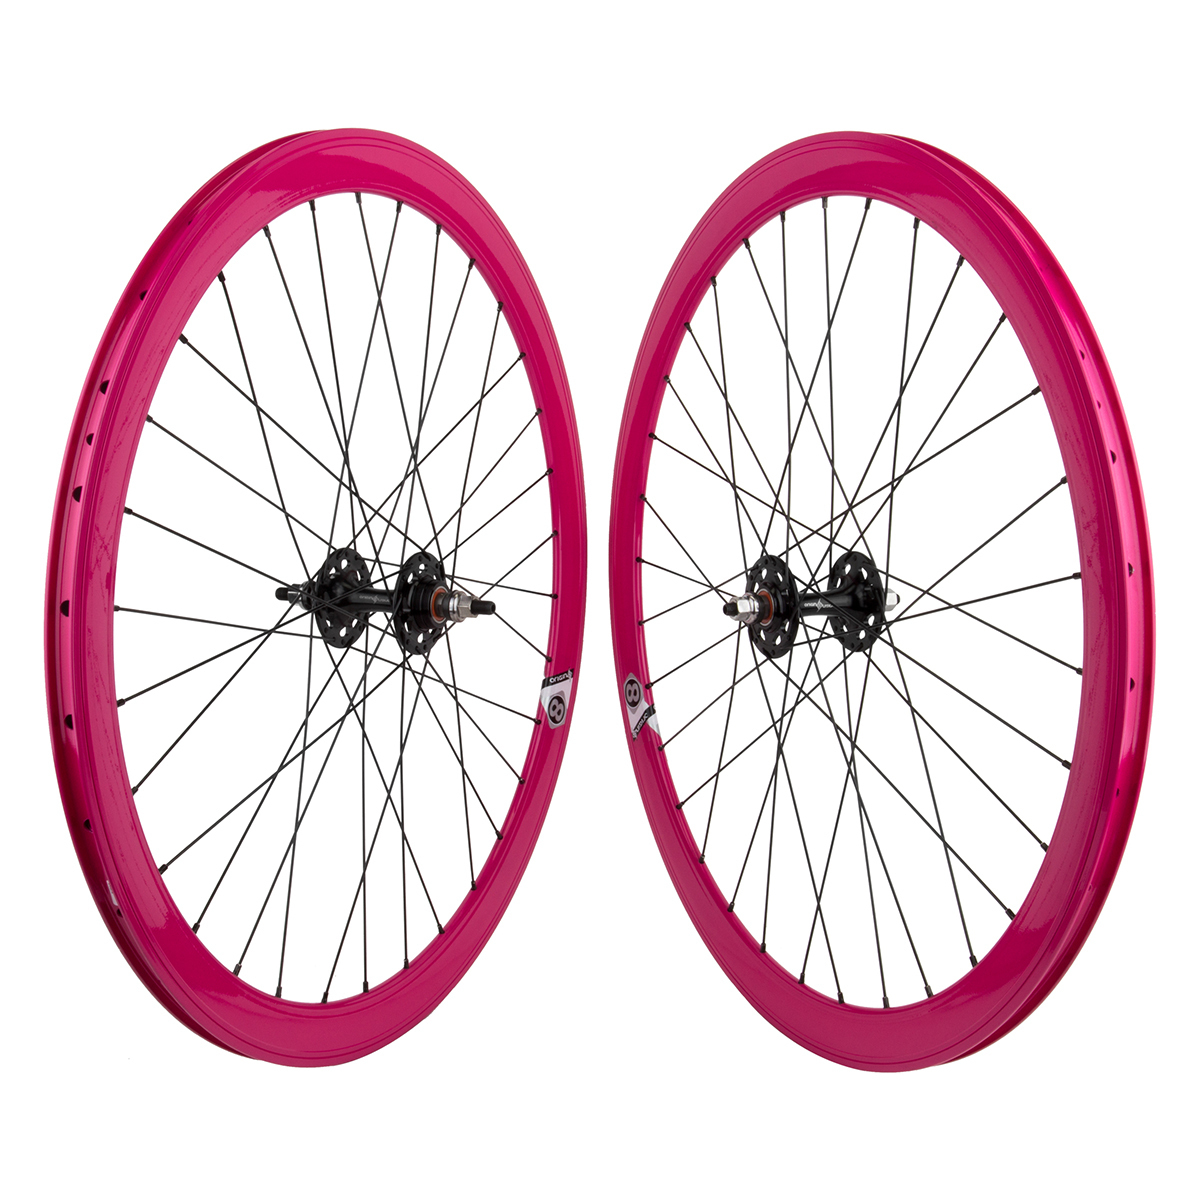 Origin8 TA42 700c Bike Wheelset Pink NMSW FX/FX Sealed Hub